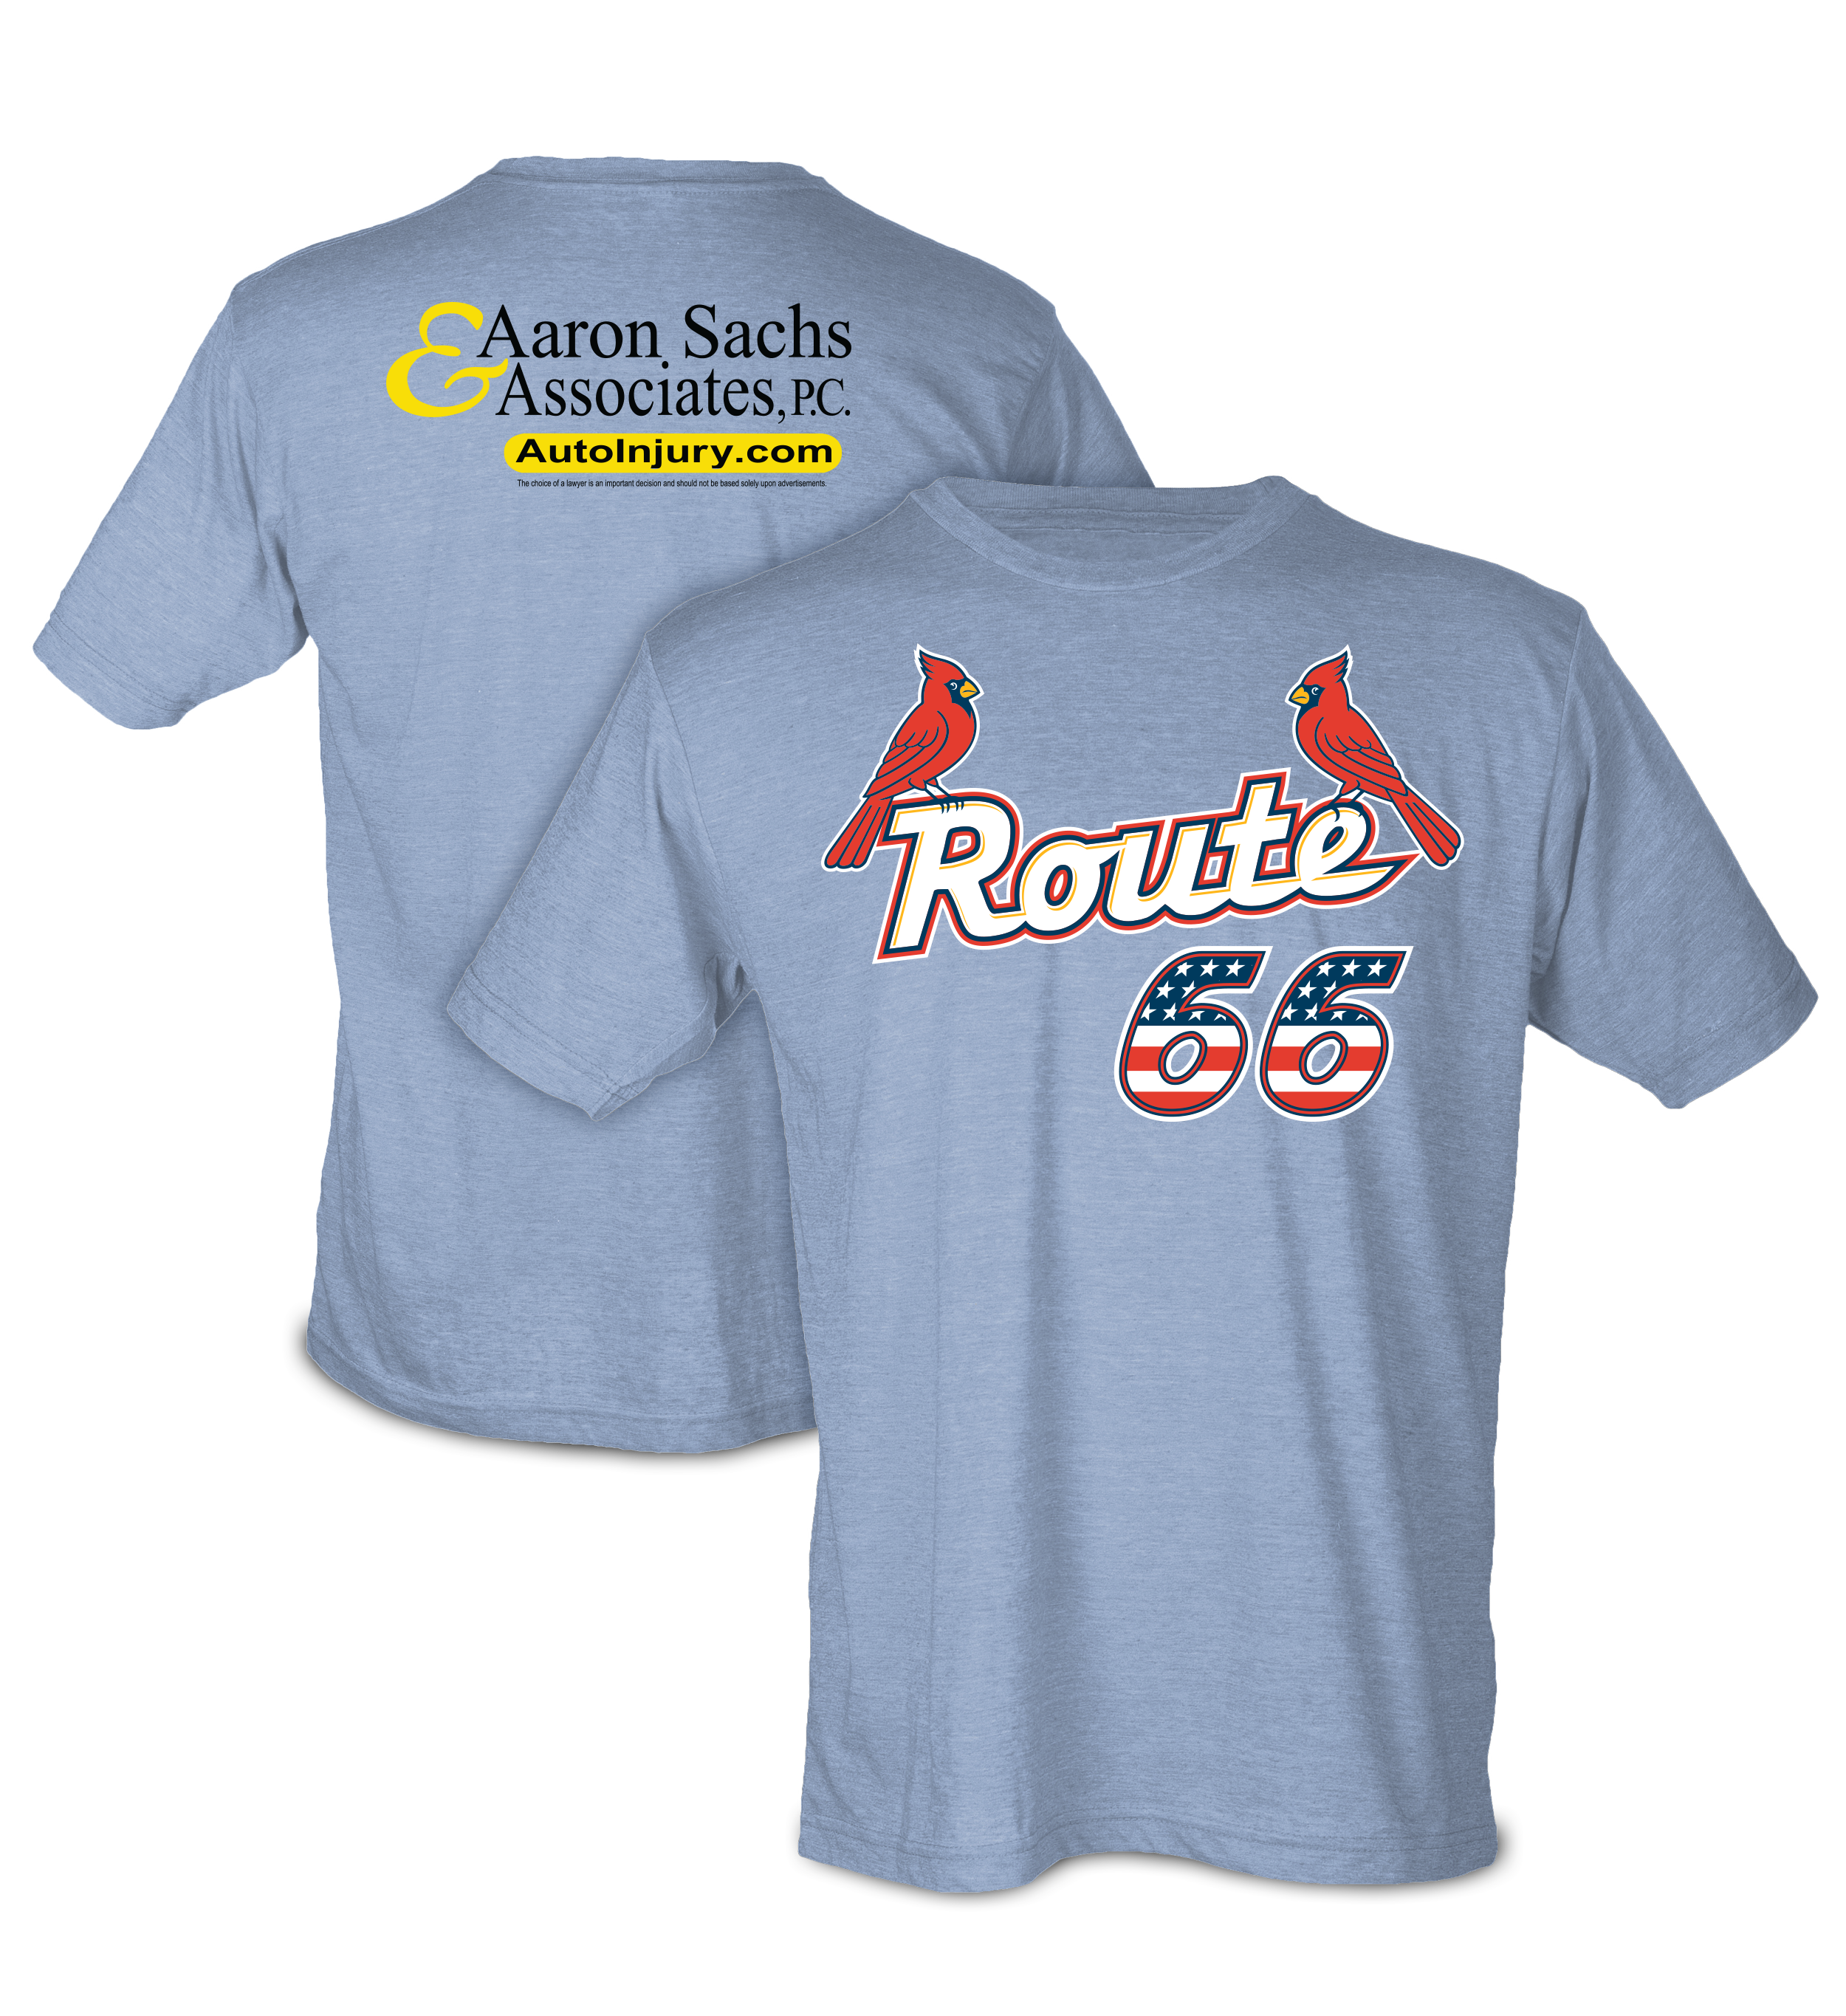 a98639ac5 ... specially designed and Springfield Cardinals themed Route 66 shirt to  their wardrobe